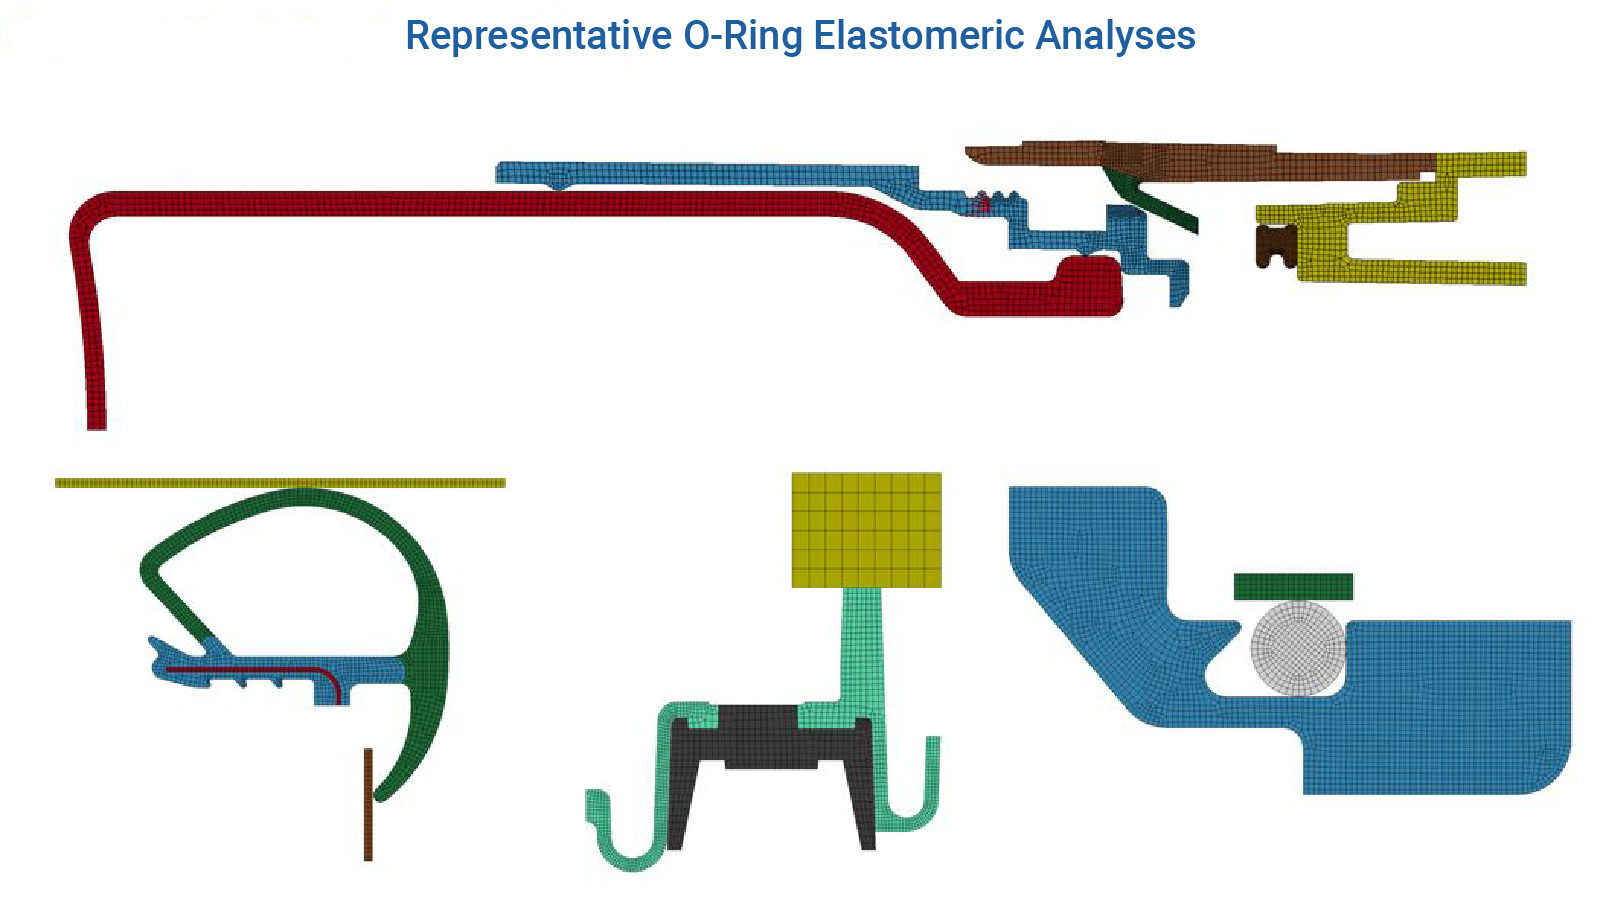 Figure 1 - Different O-Ring simulations from 2-D to Axisymmetric - LS-DYNA Consulting Services